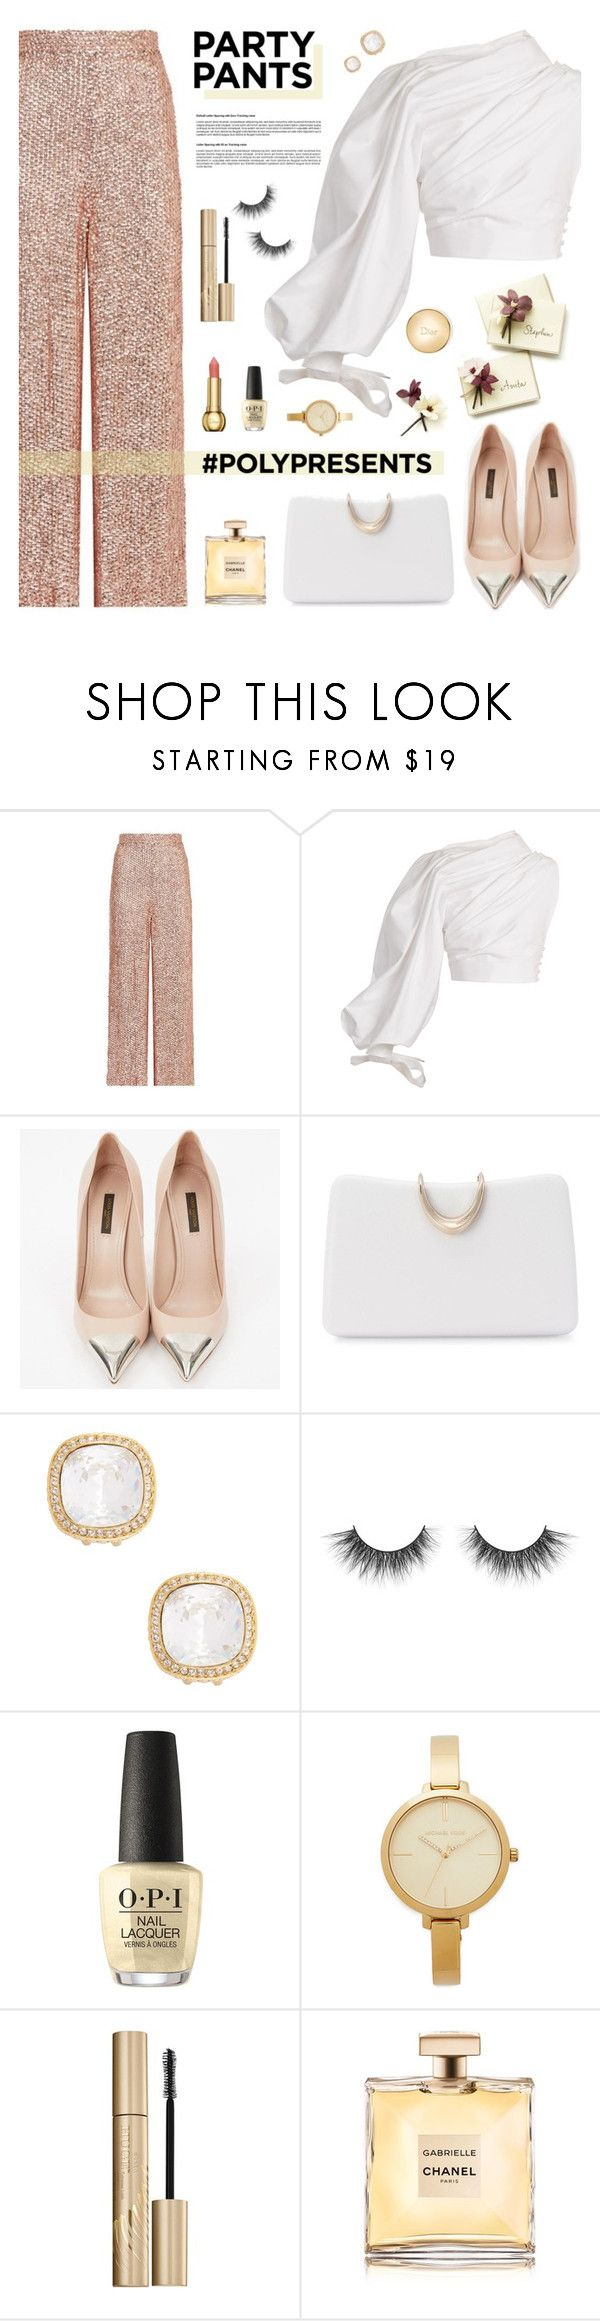 """#PolyPresents: Fancy Pants"" by tamara-p ❤ liked on Polyvore featuring Temperley London, Jacquemus, Louis Vuitton, SOKO, Kenneth Jay Lane, OPI, Michael Kors, Stila, Christian Dior and contestentry"